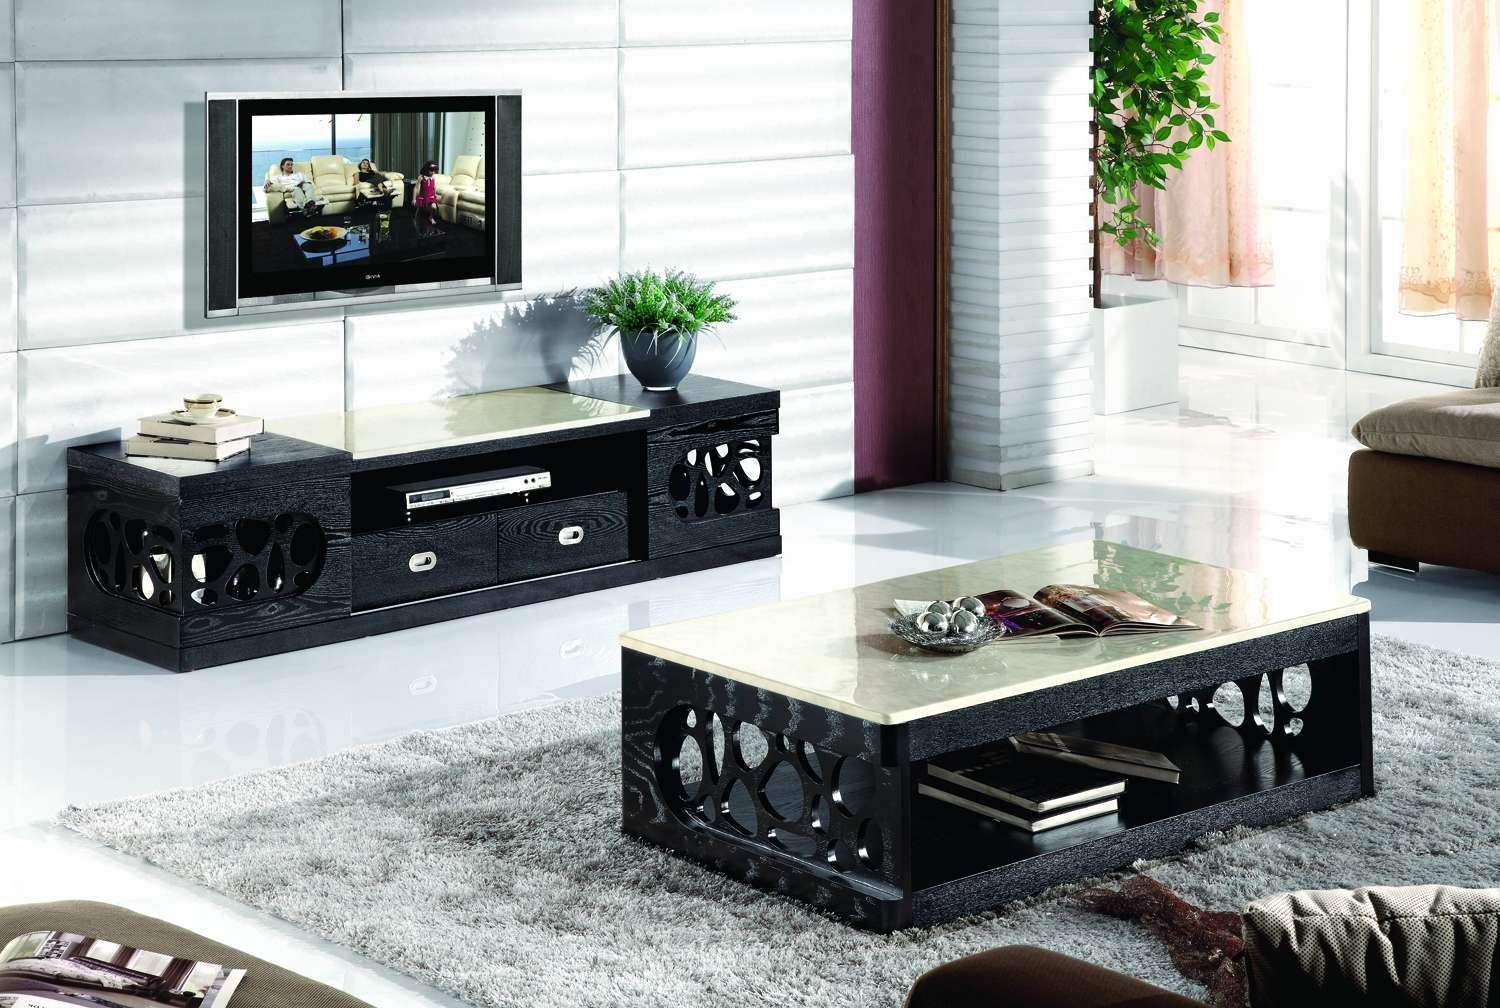 Coffee Table : Tv Stand And Coffee Table Sets Cheap End Setscheap With Regard To Tv Stands Coffee Table Sets (View 10 of 15)